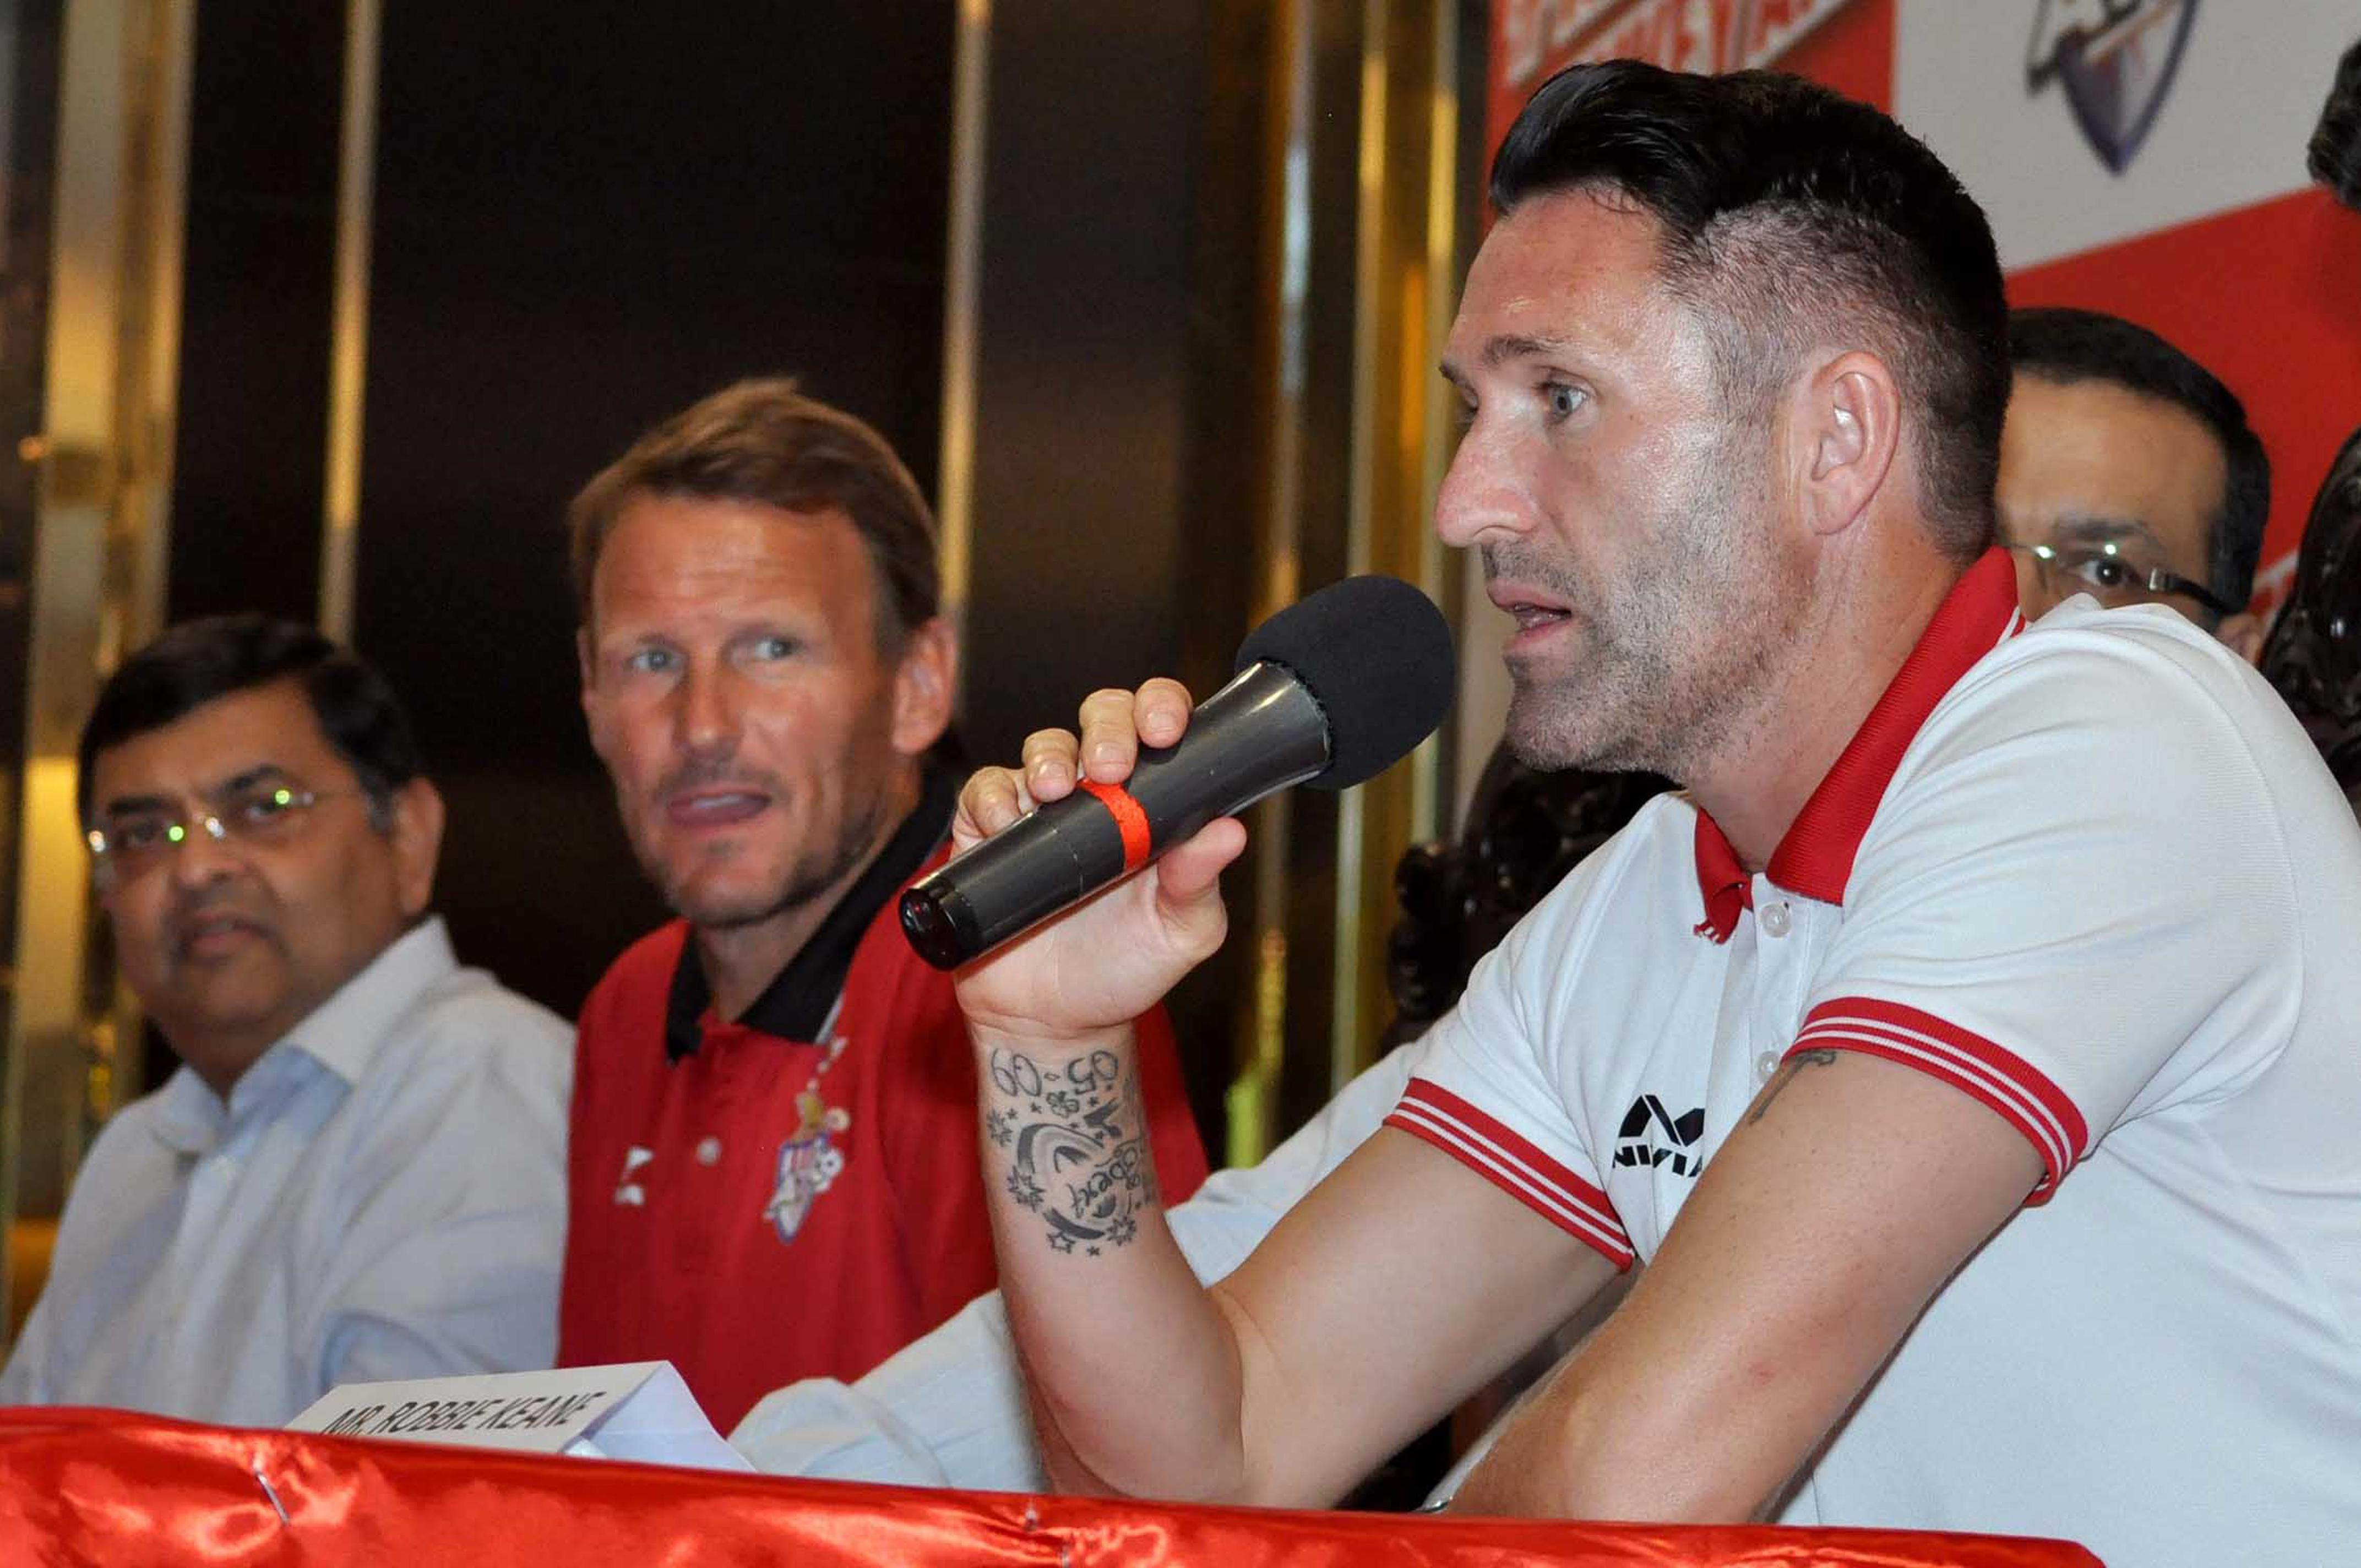 Robbie Keane moved to India to play for Teddy Sheringham but the ex-Man United man was sacked